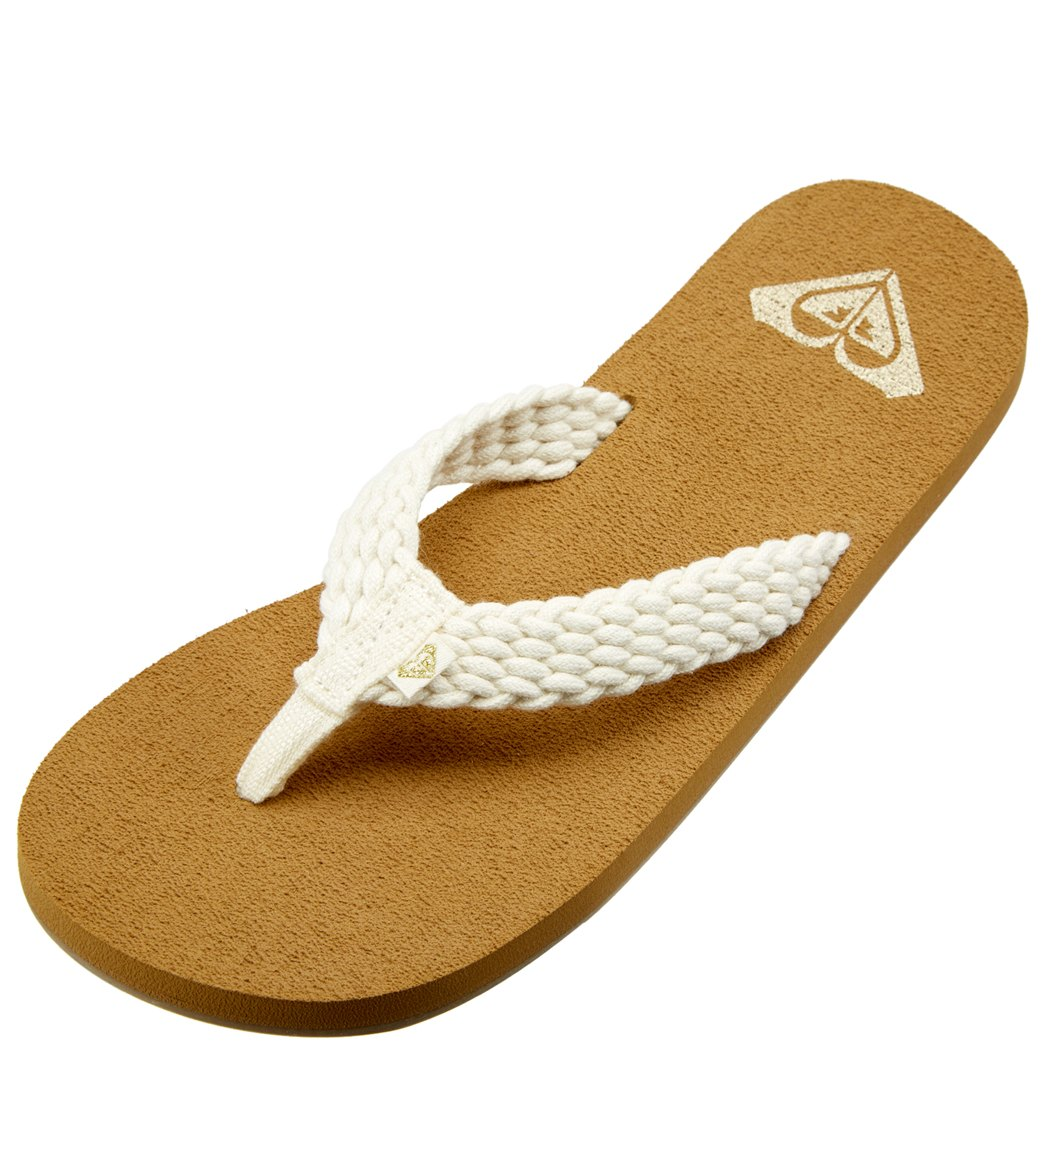 96da4c491ee08d Roxy Women s Porto II Flip Flop at SwimOutlet.com